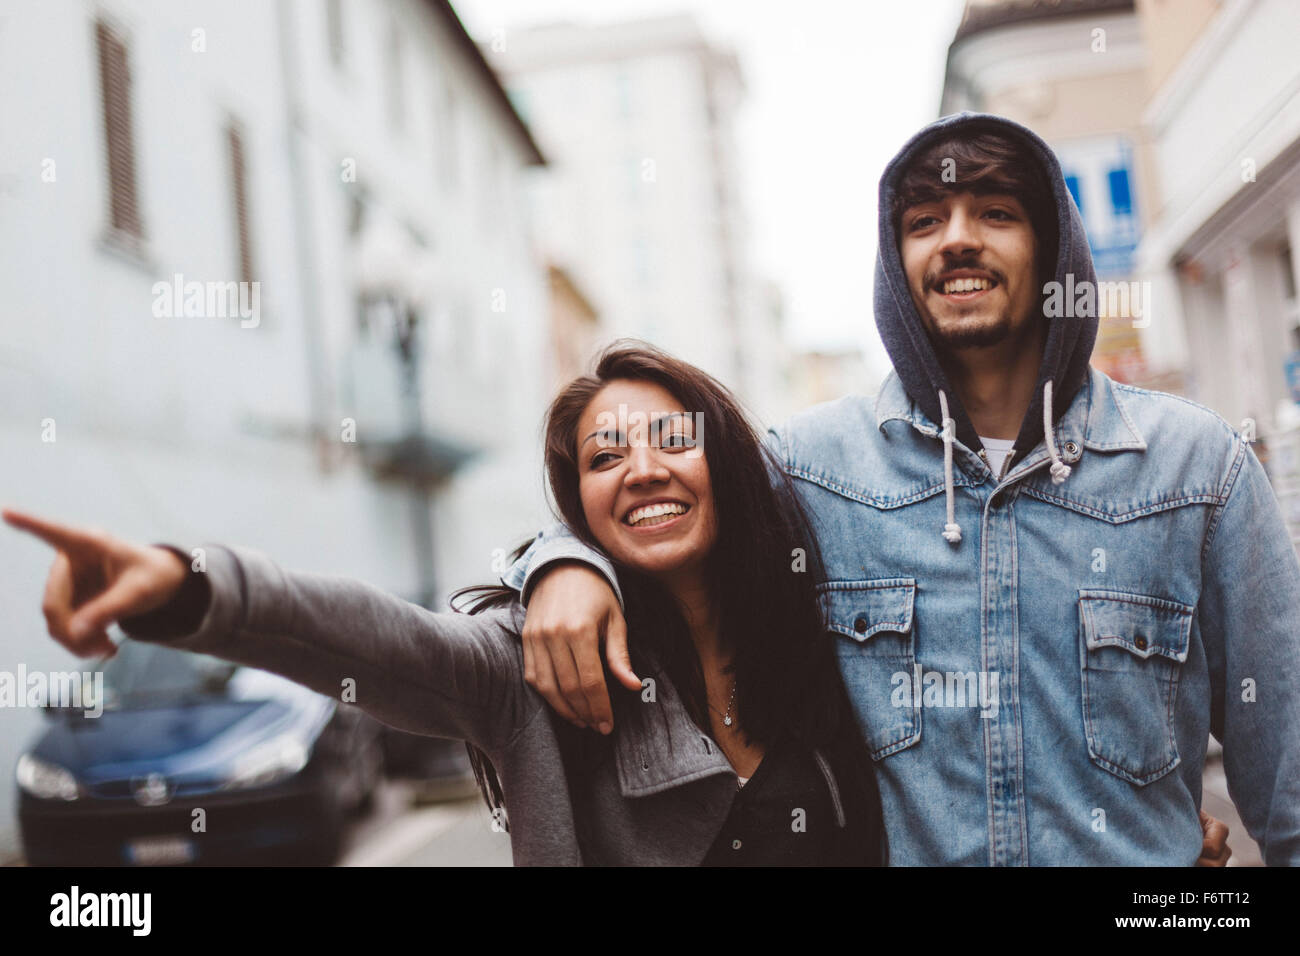 Italy, Rimini, smiling couple in the city - Stock Image